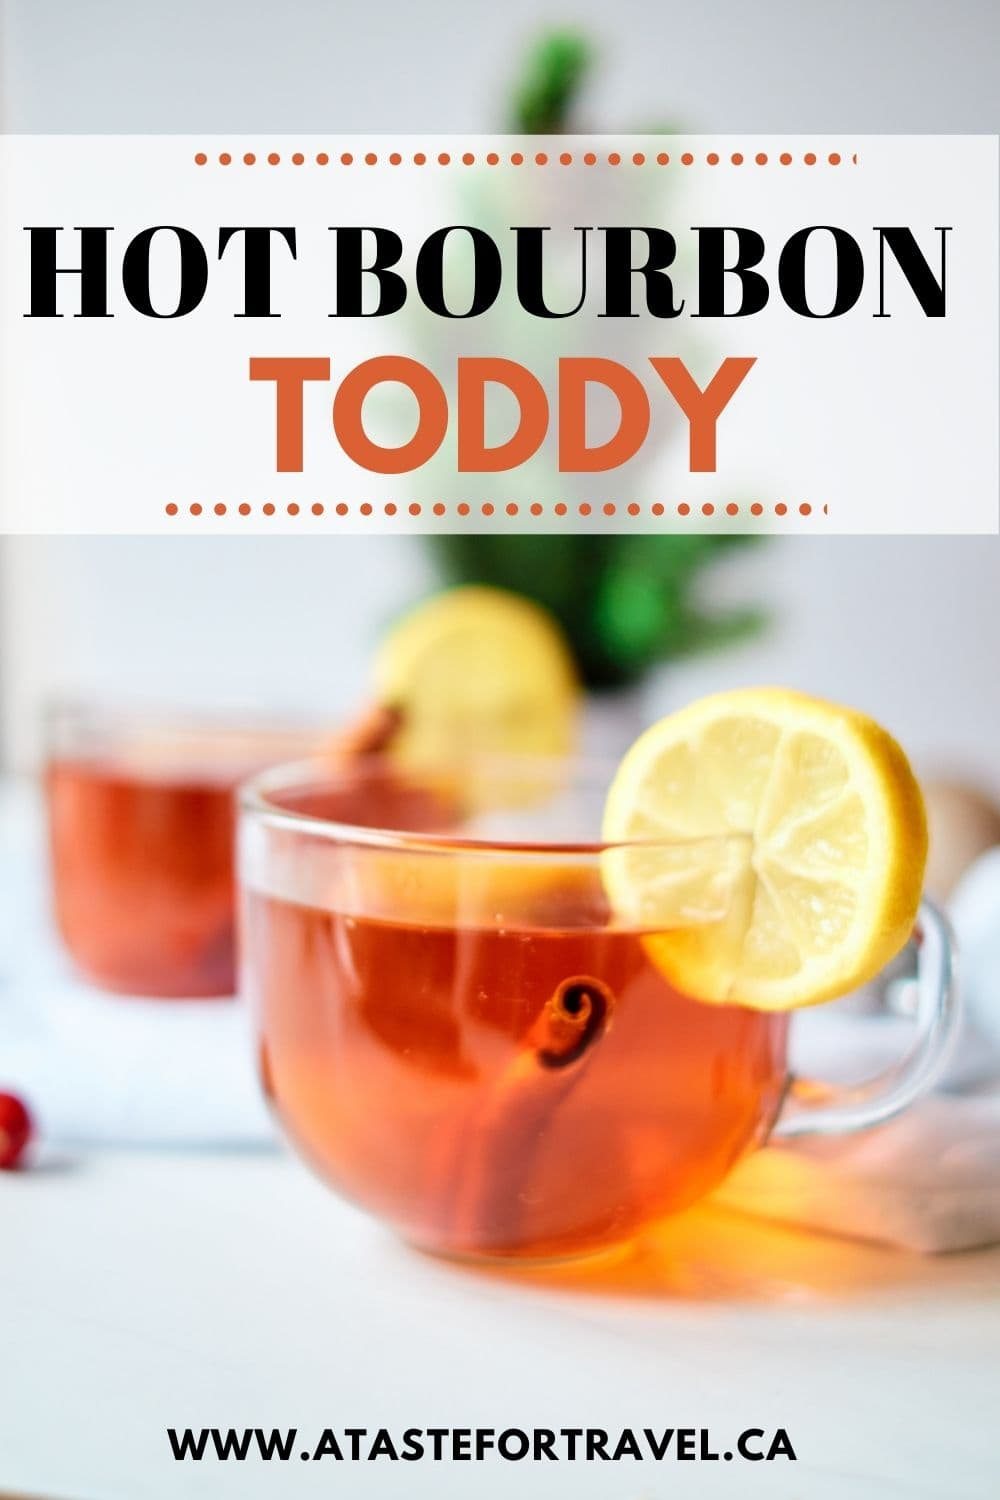 Hot BOurbon Toddy with text overlay.